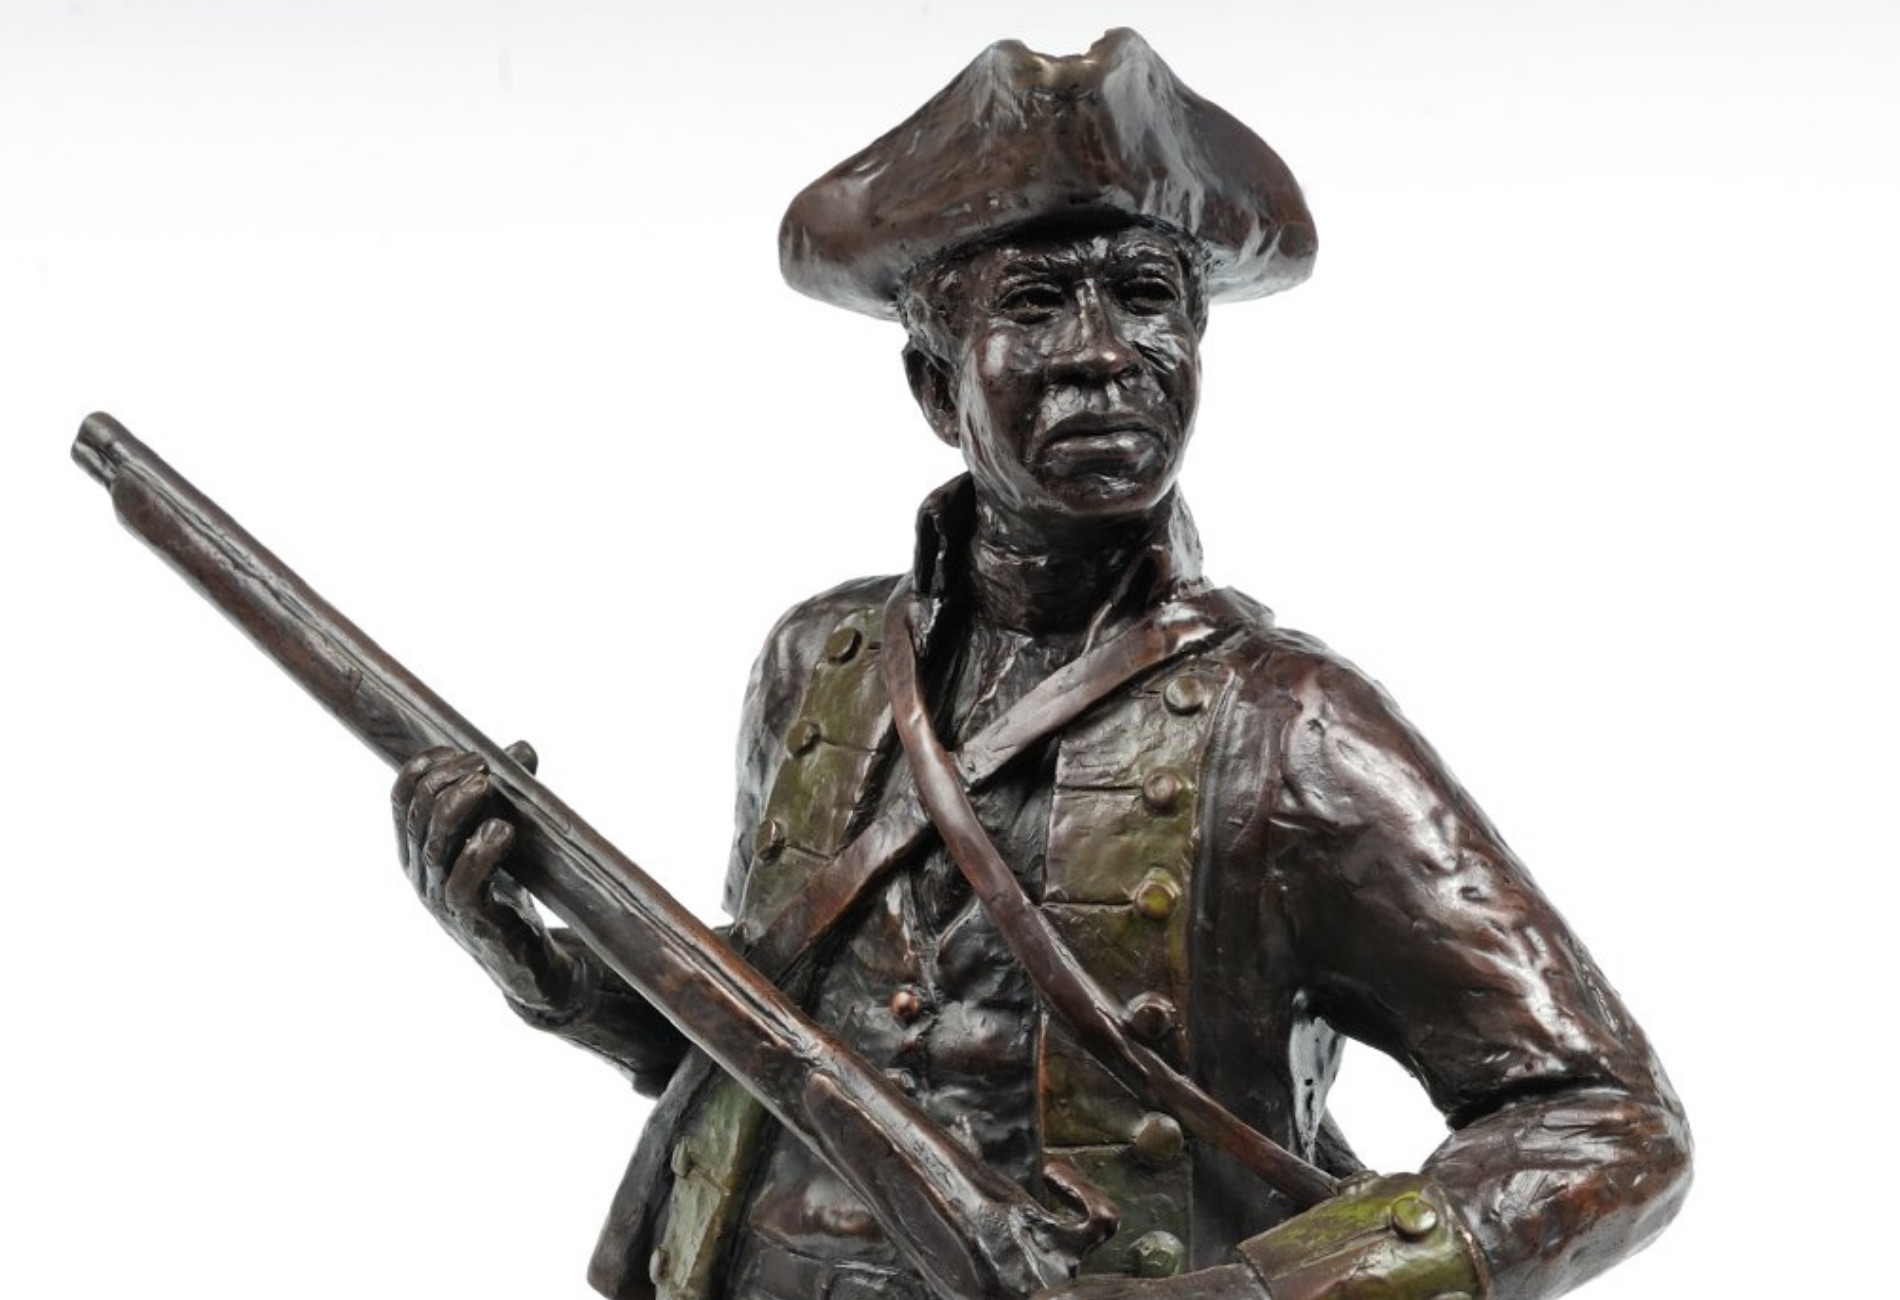 No portrait of Chatham Freeman is known, but this sculpture of a proposed figure for the Black Revolutionary War Patriots Memorial honors his service.